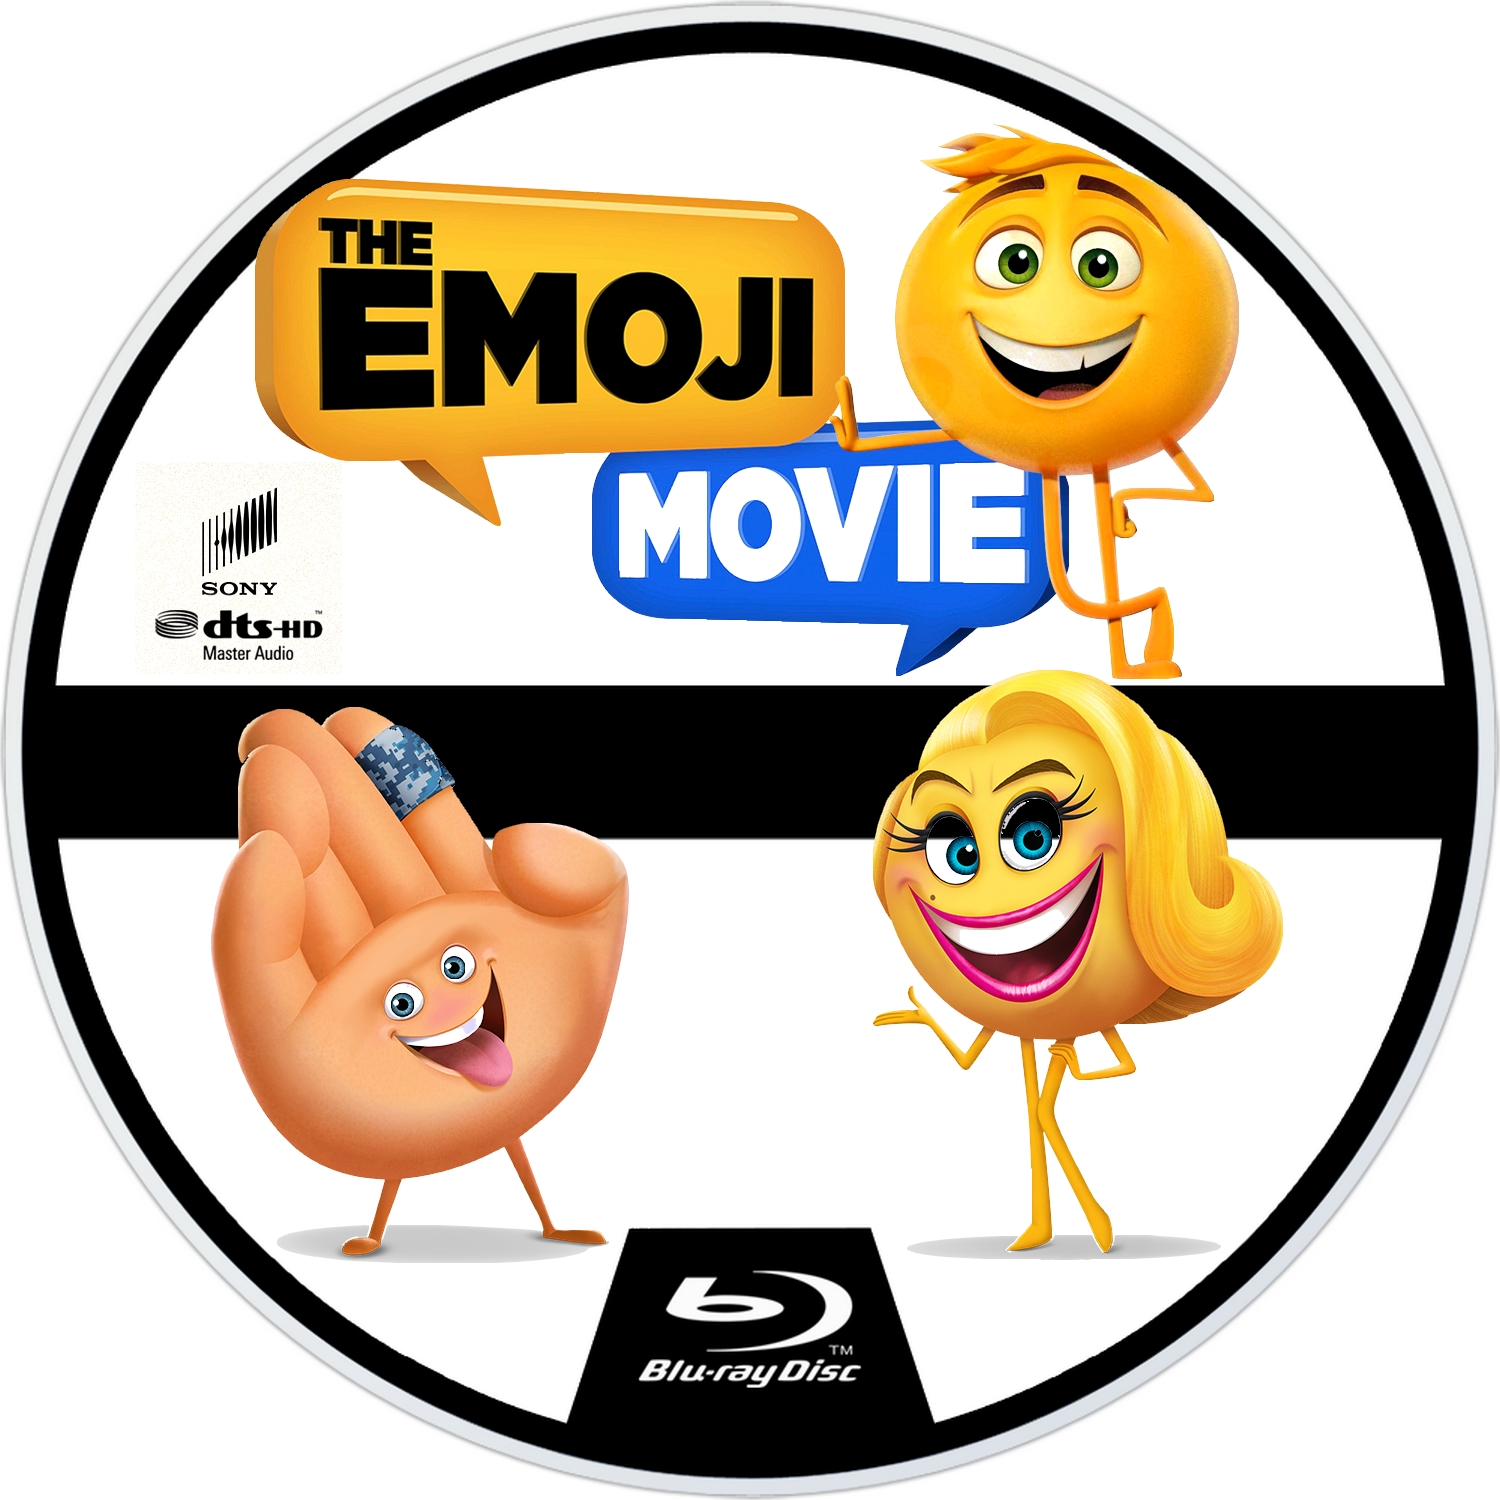 The Emoji Movie 2017 Cd Dvd Covers Cover Century Over 500 000 Album Art Covers For Free